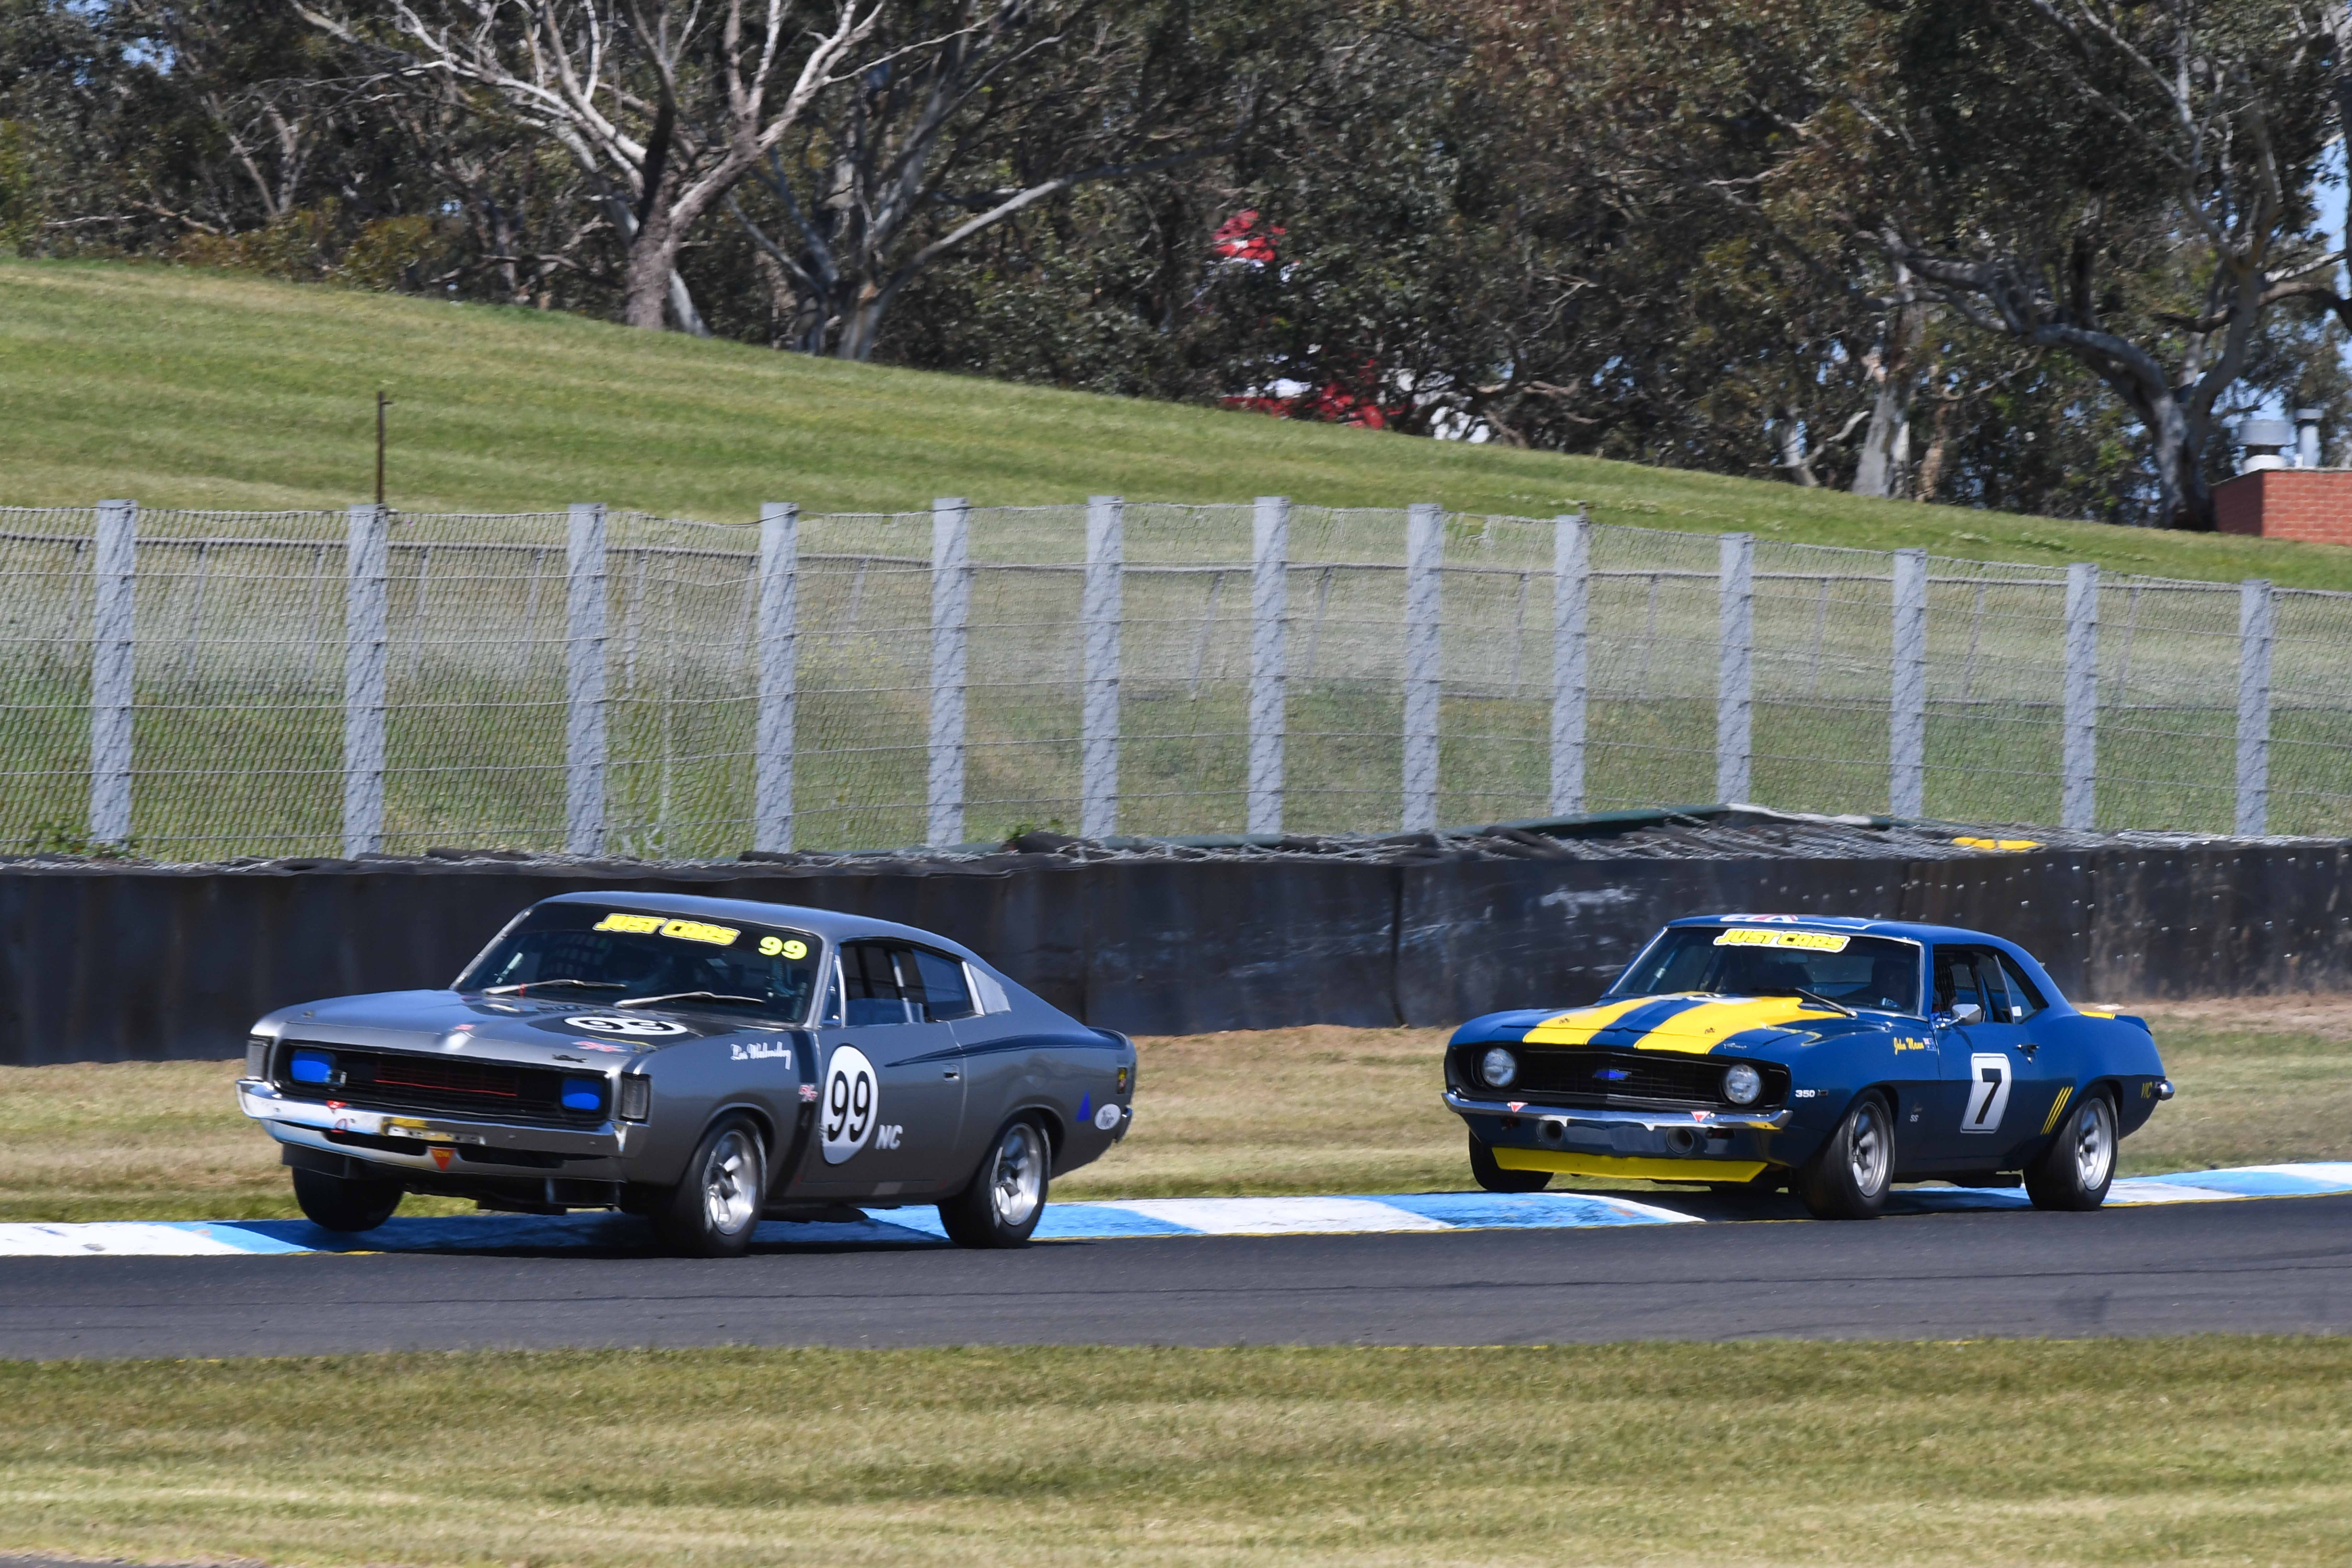 Sunny Days Sensational Racing Historic Touring Cars